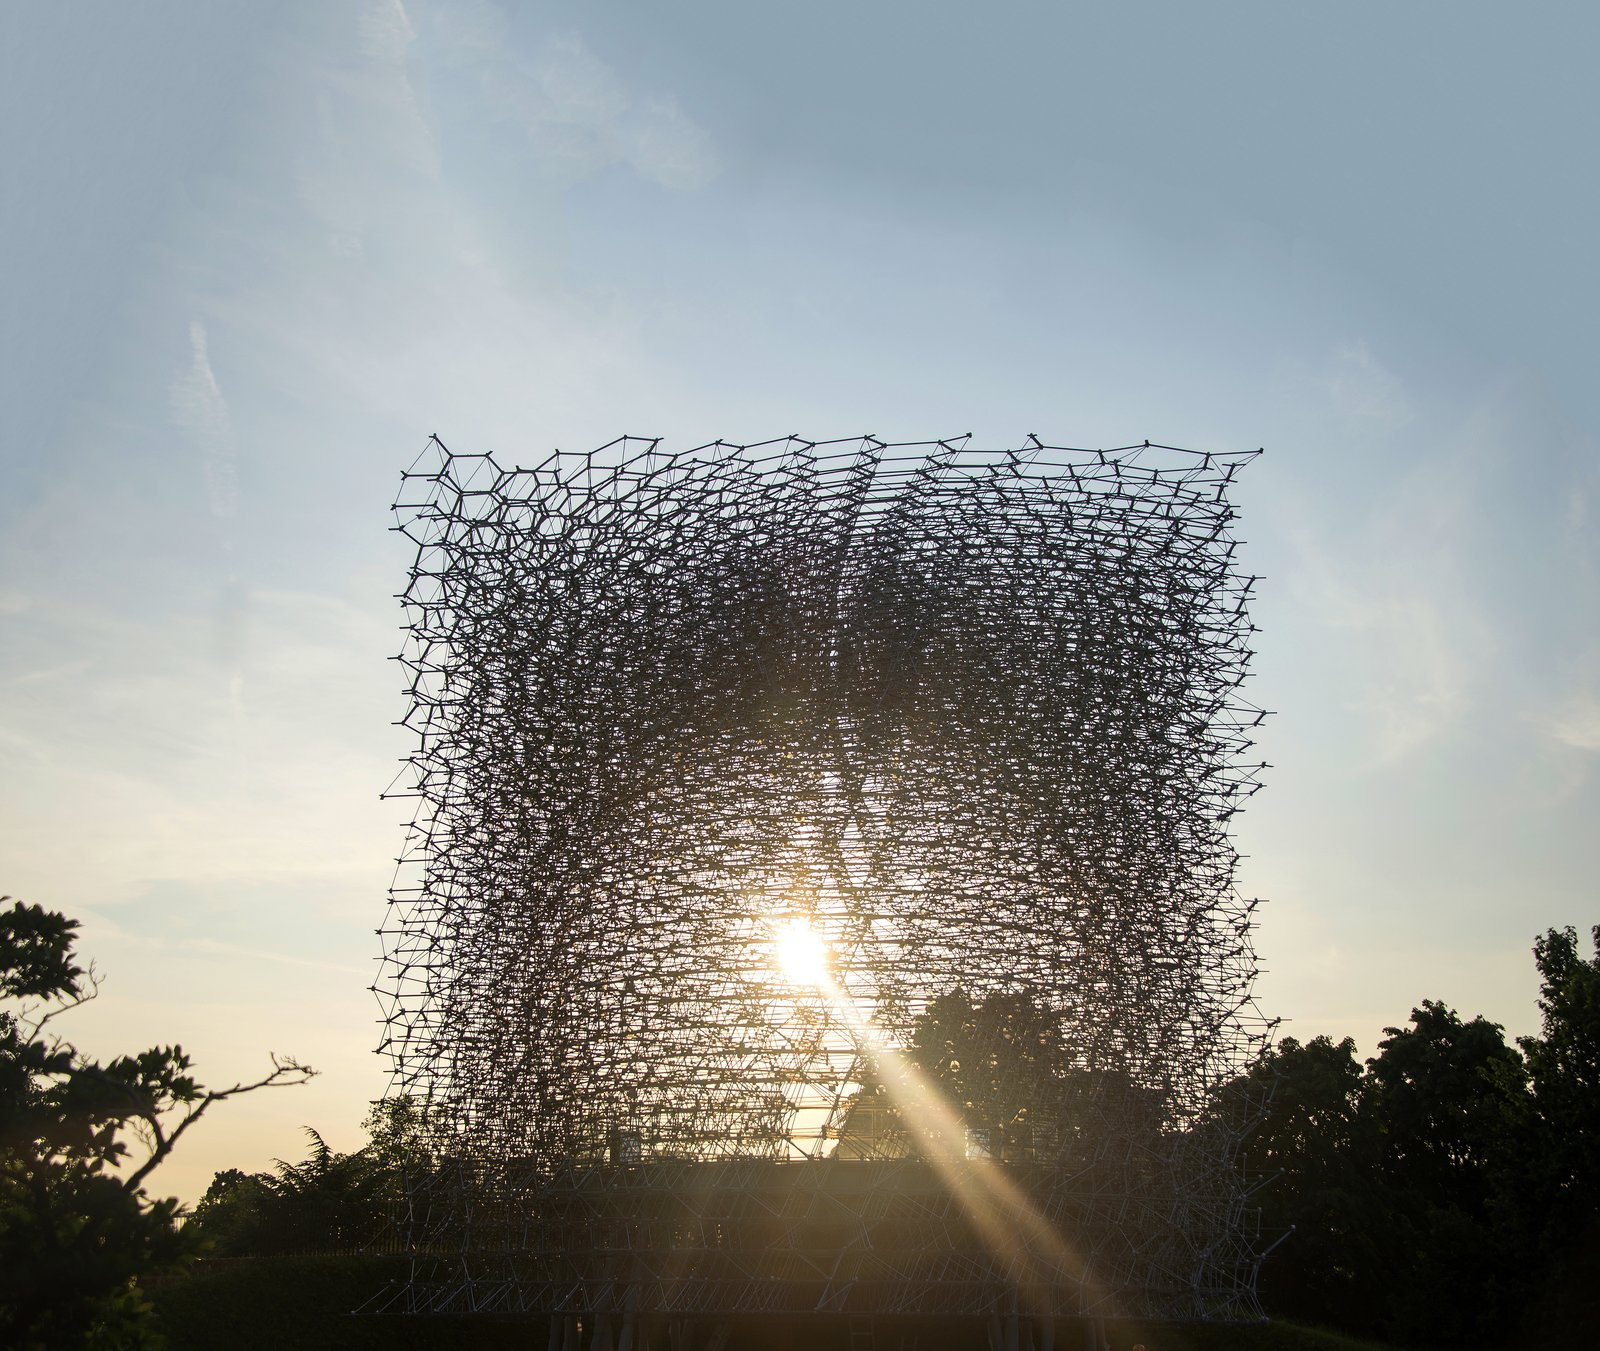 Over 3.3 million visitors poured into the Hive during its tenure at the Milan Expo, making it the most popular British paid attraction across the globe in 2015. It is the first UK pavilion to move to a second venue.  Photo 5 of 5 in This Hive Makes Visitors a Part of the Swarm